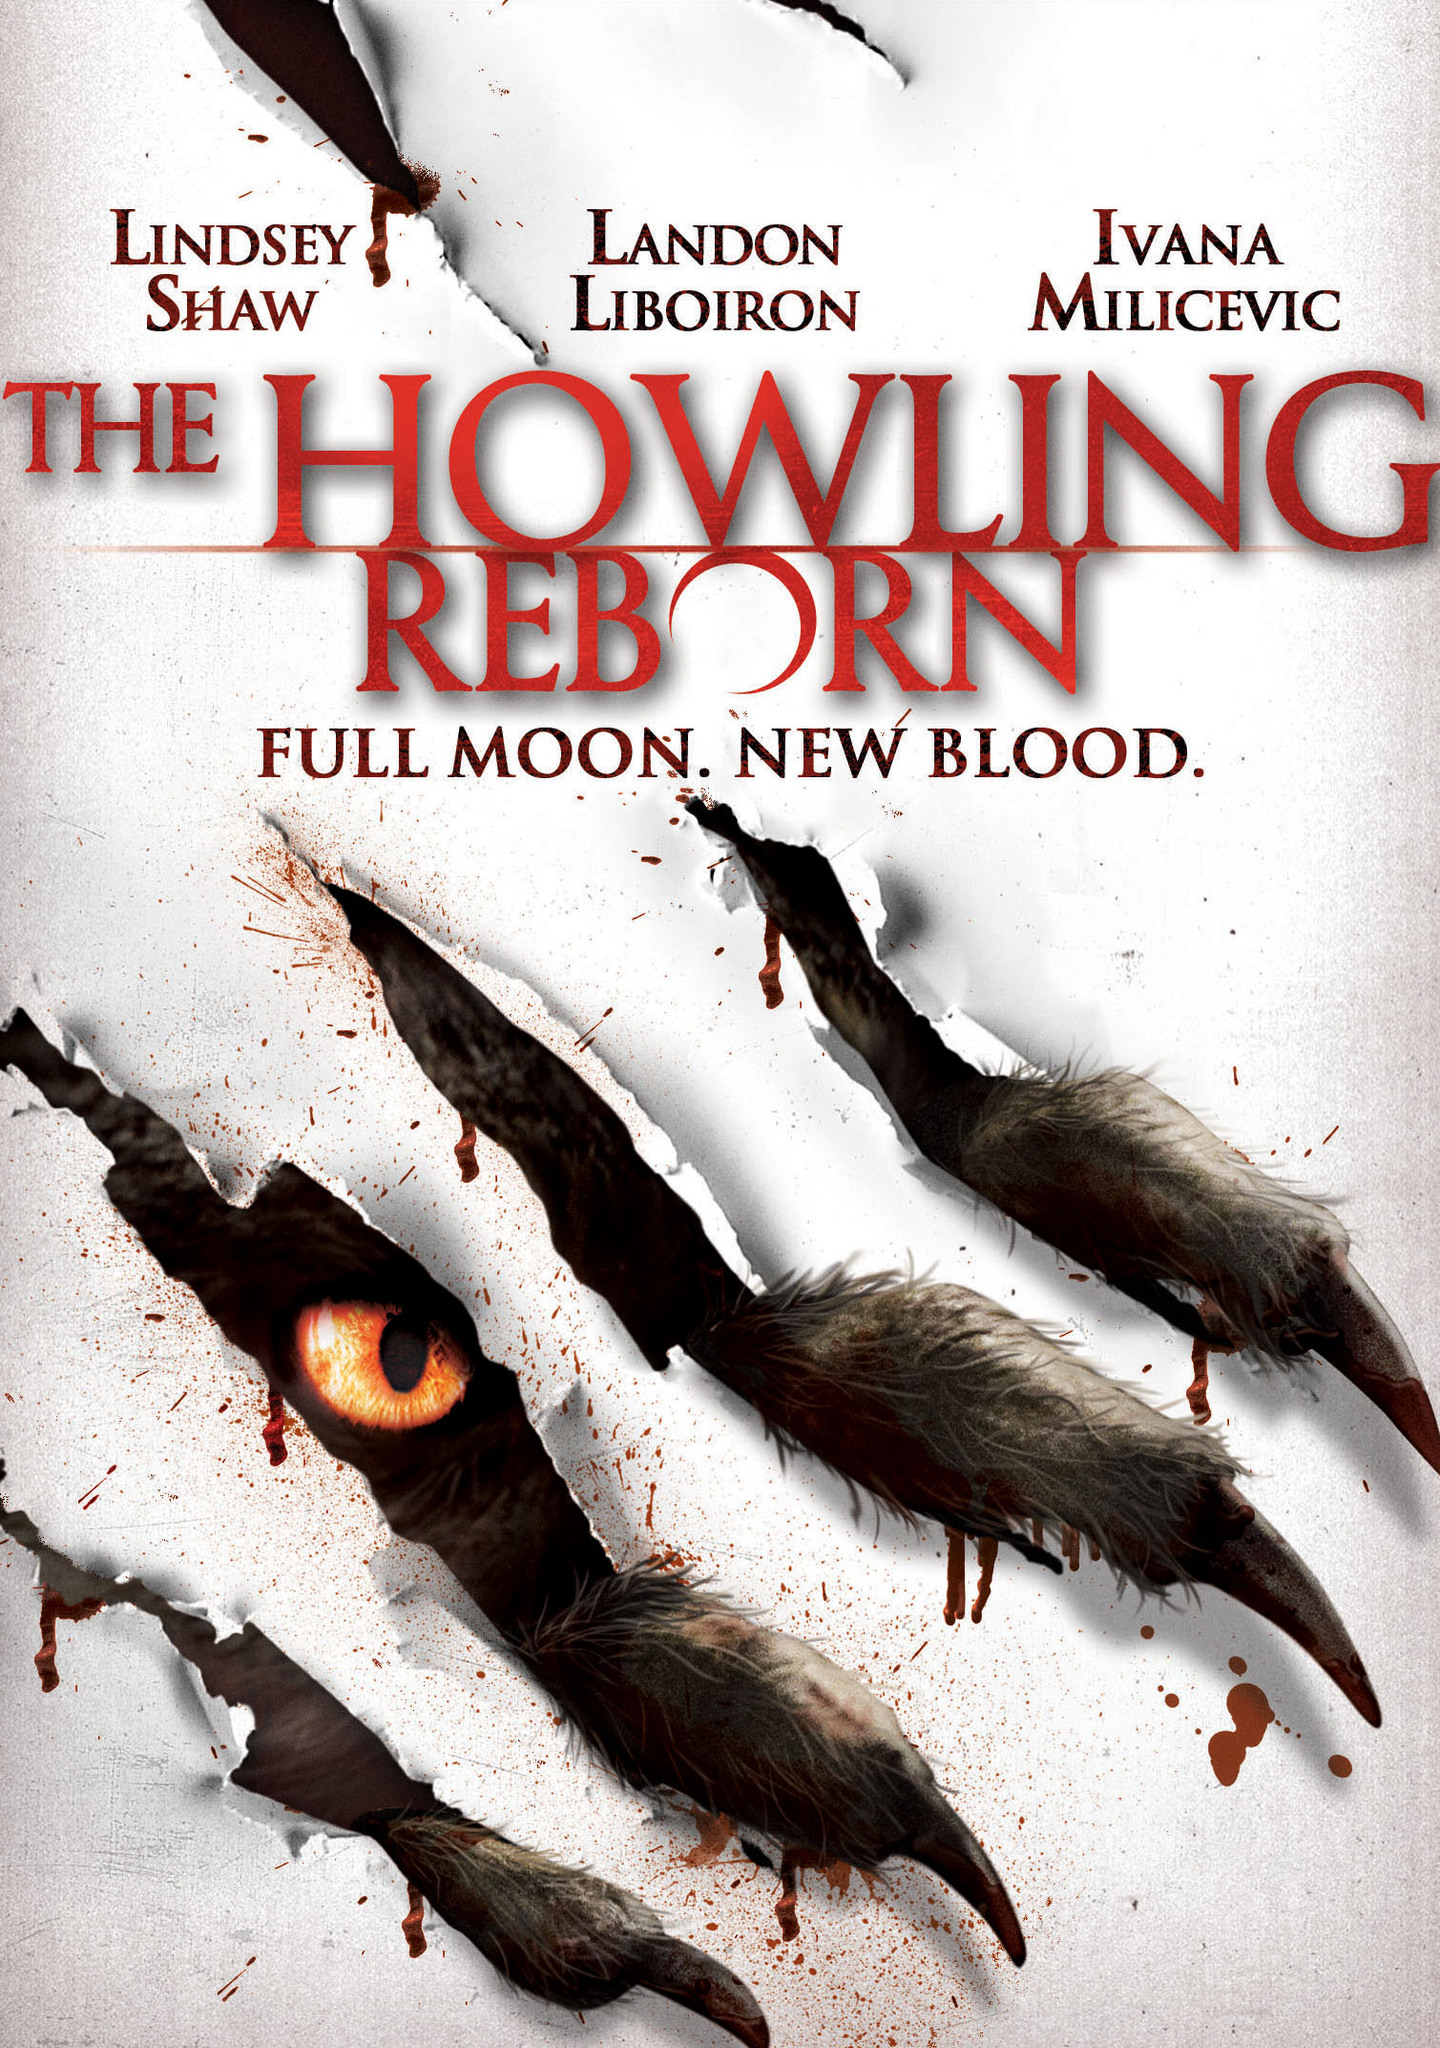 The Howling: Reborn (Video 2011) - IMDb